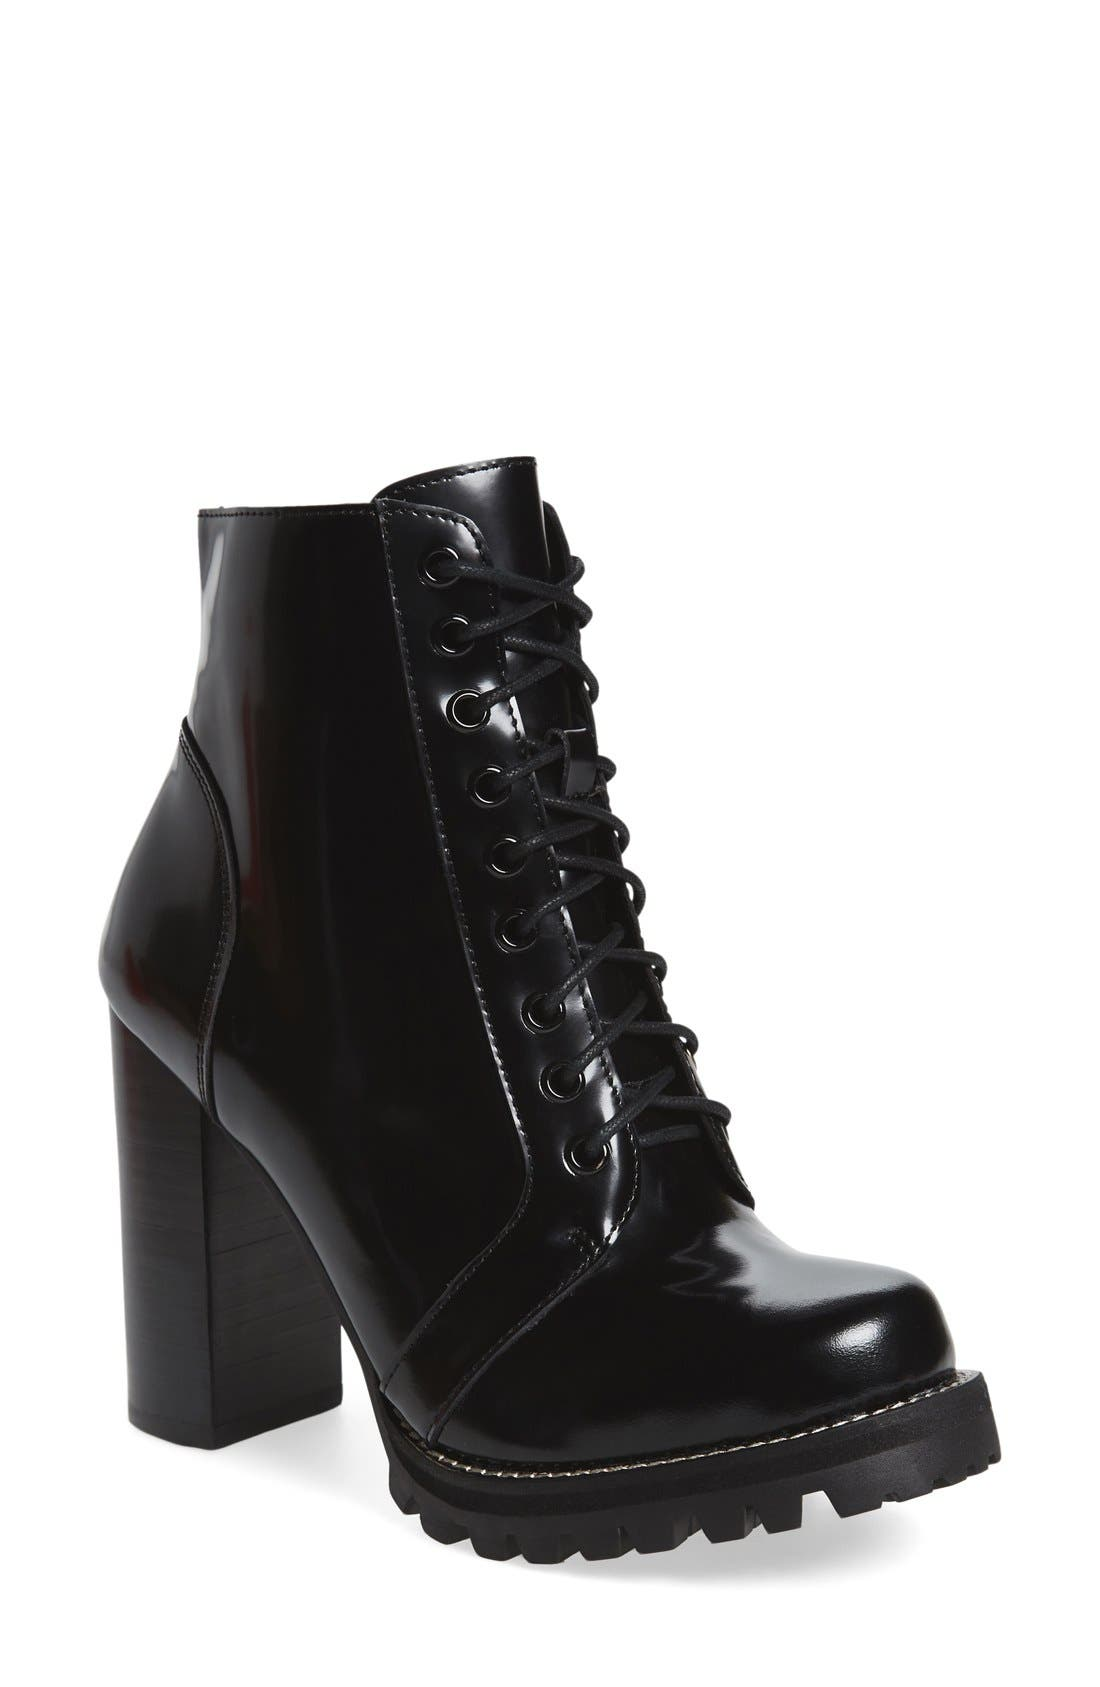 ea0be0517ab2 Jeffrey Campbell Boots